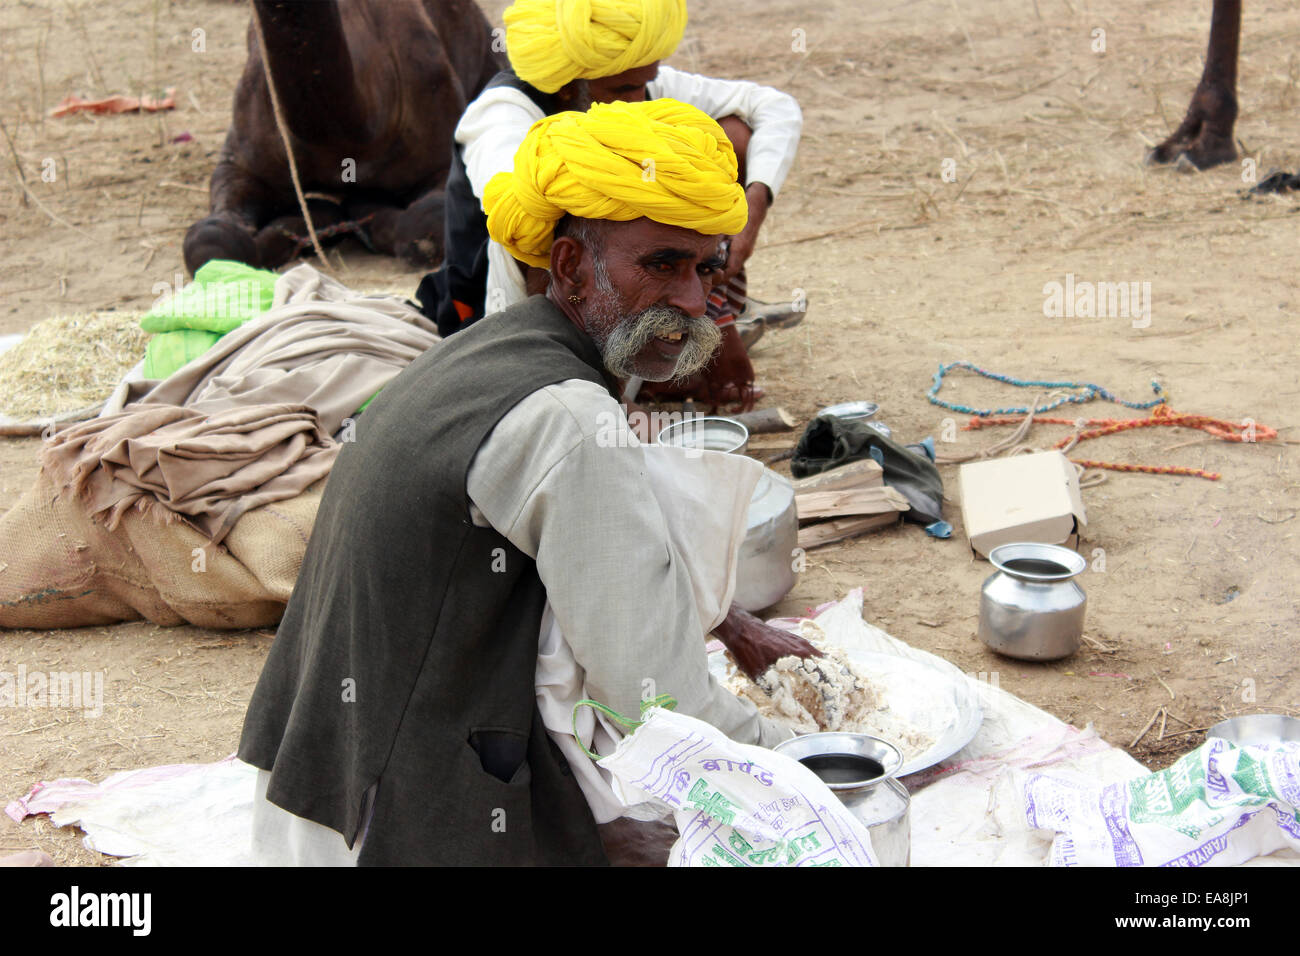 two, male, man, flair, siting, mix, turban, mustache in Pushkar, Rajasthan, India. - Stock Image